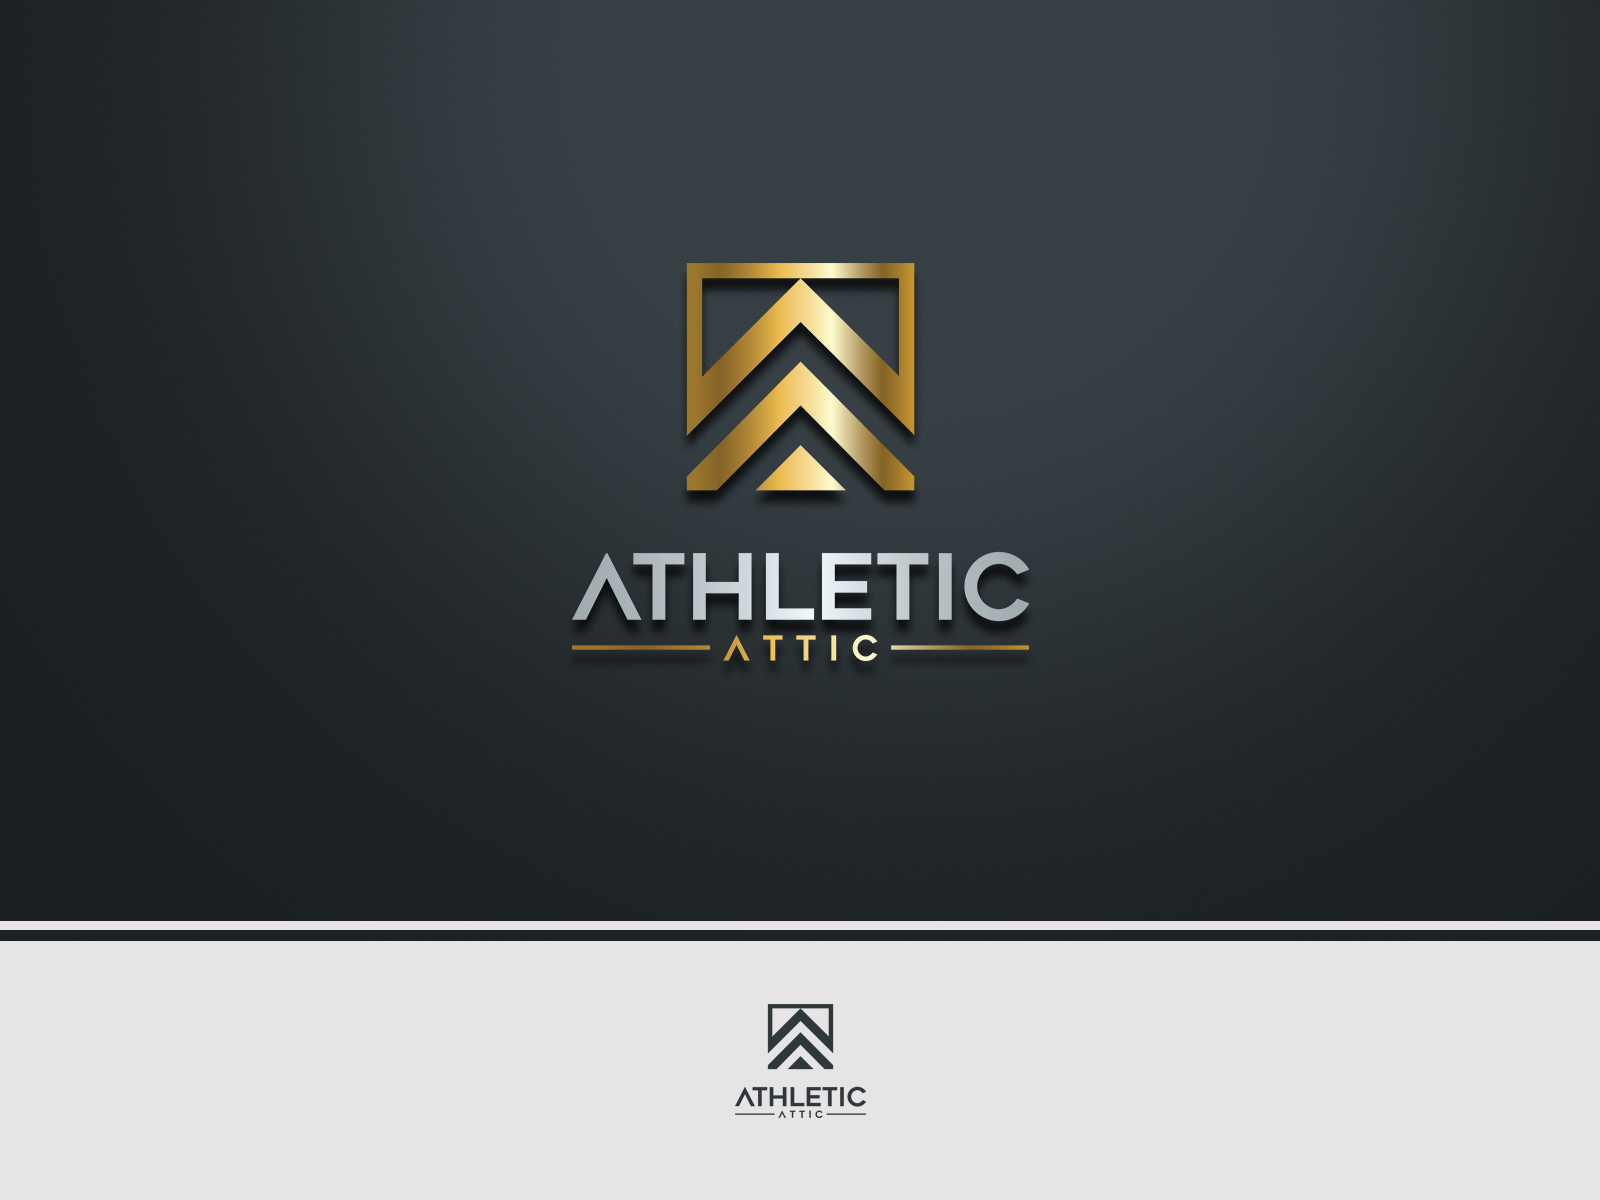 Logo Design by Ahenk Ahenk - Entry No. 70 in the Logo Design Contest Fun Logo Design for Athletic Attic.